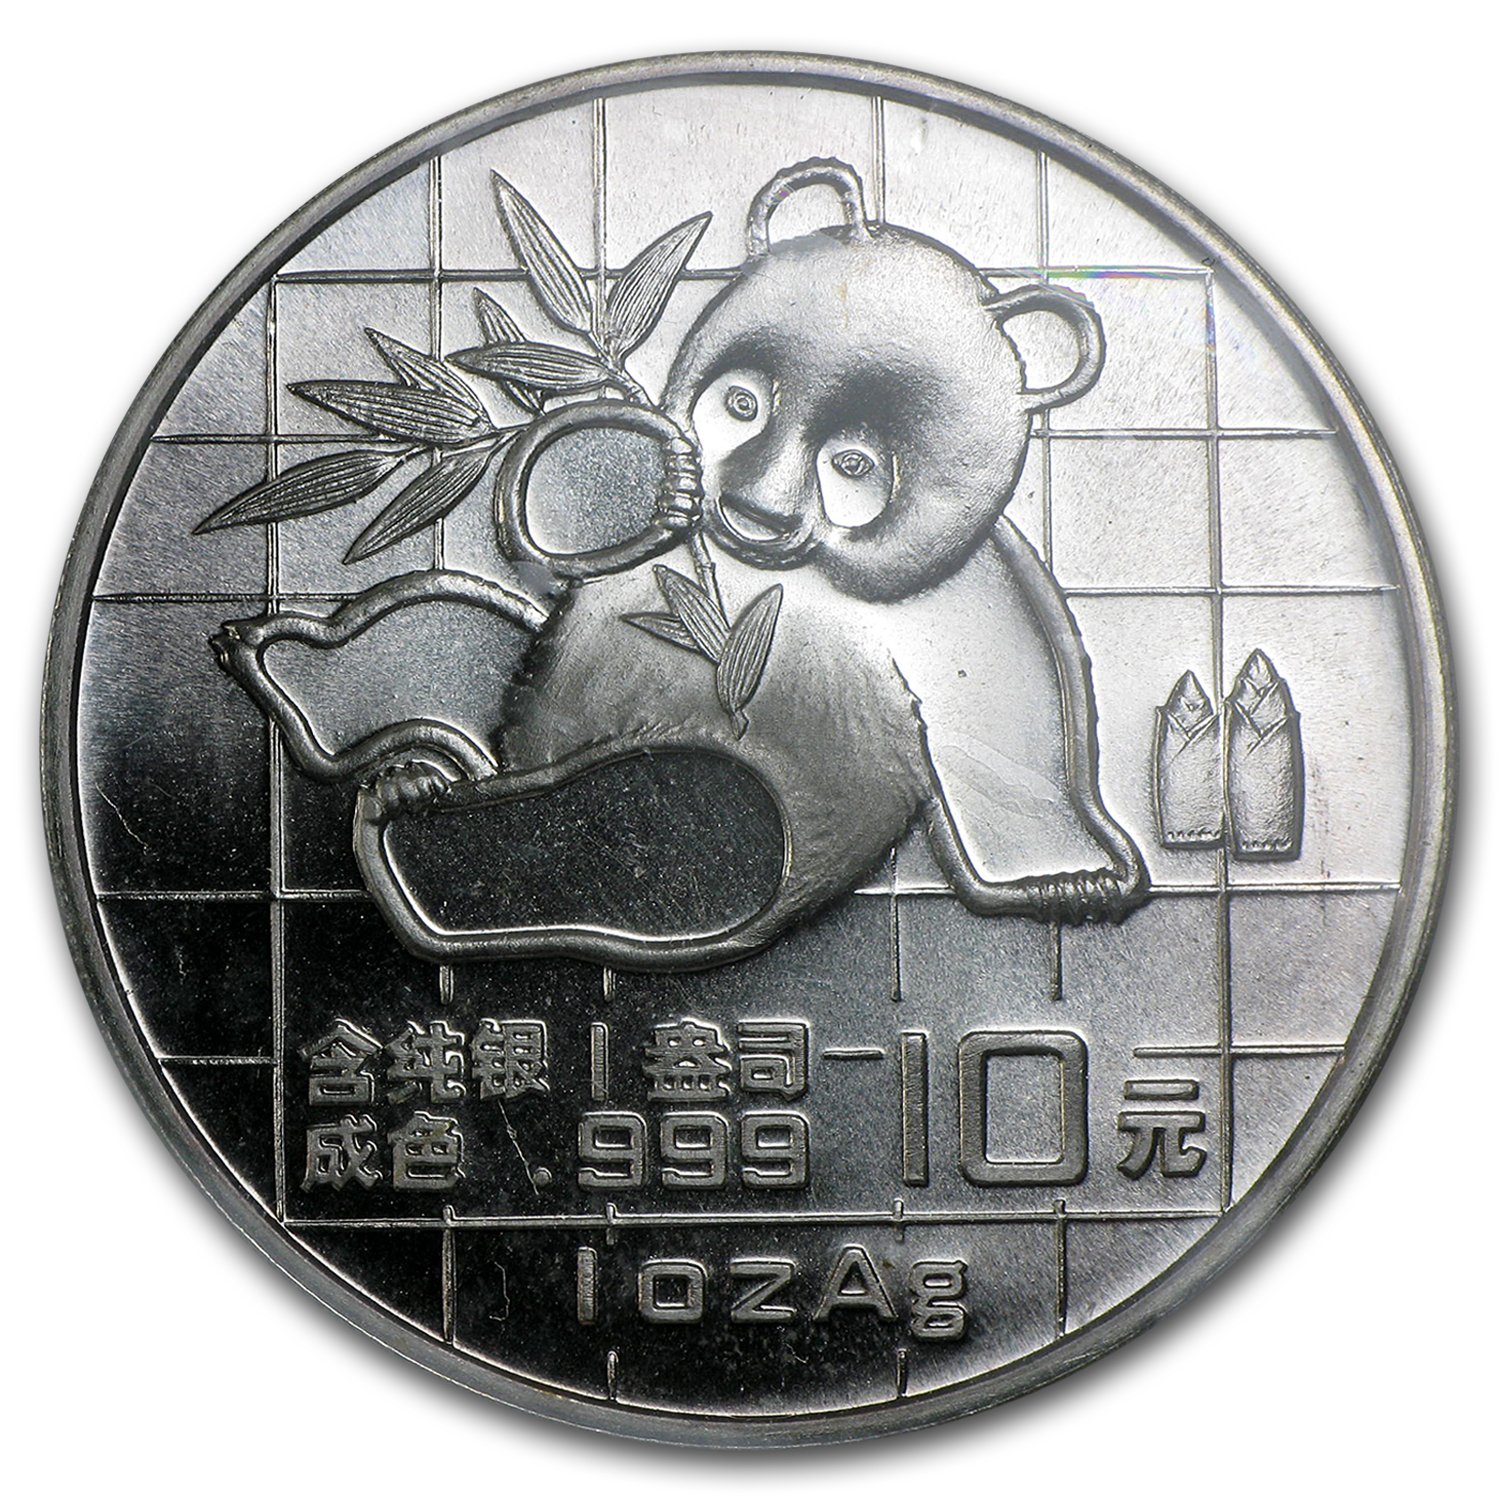 1989 China 1 oz Silver Panda BU (Sealed)